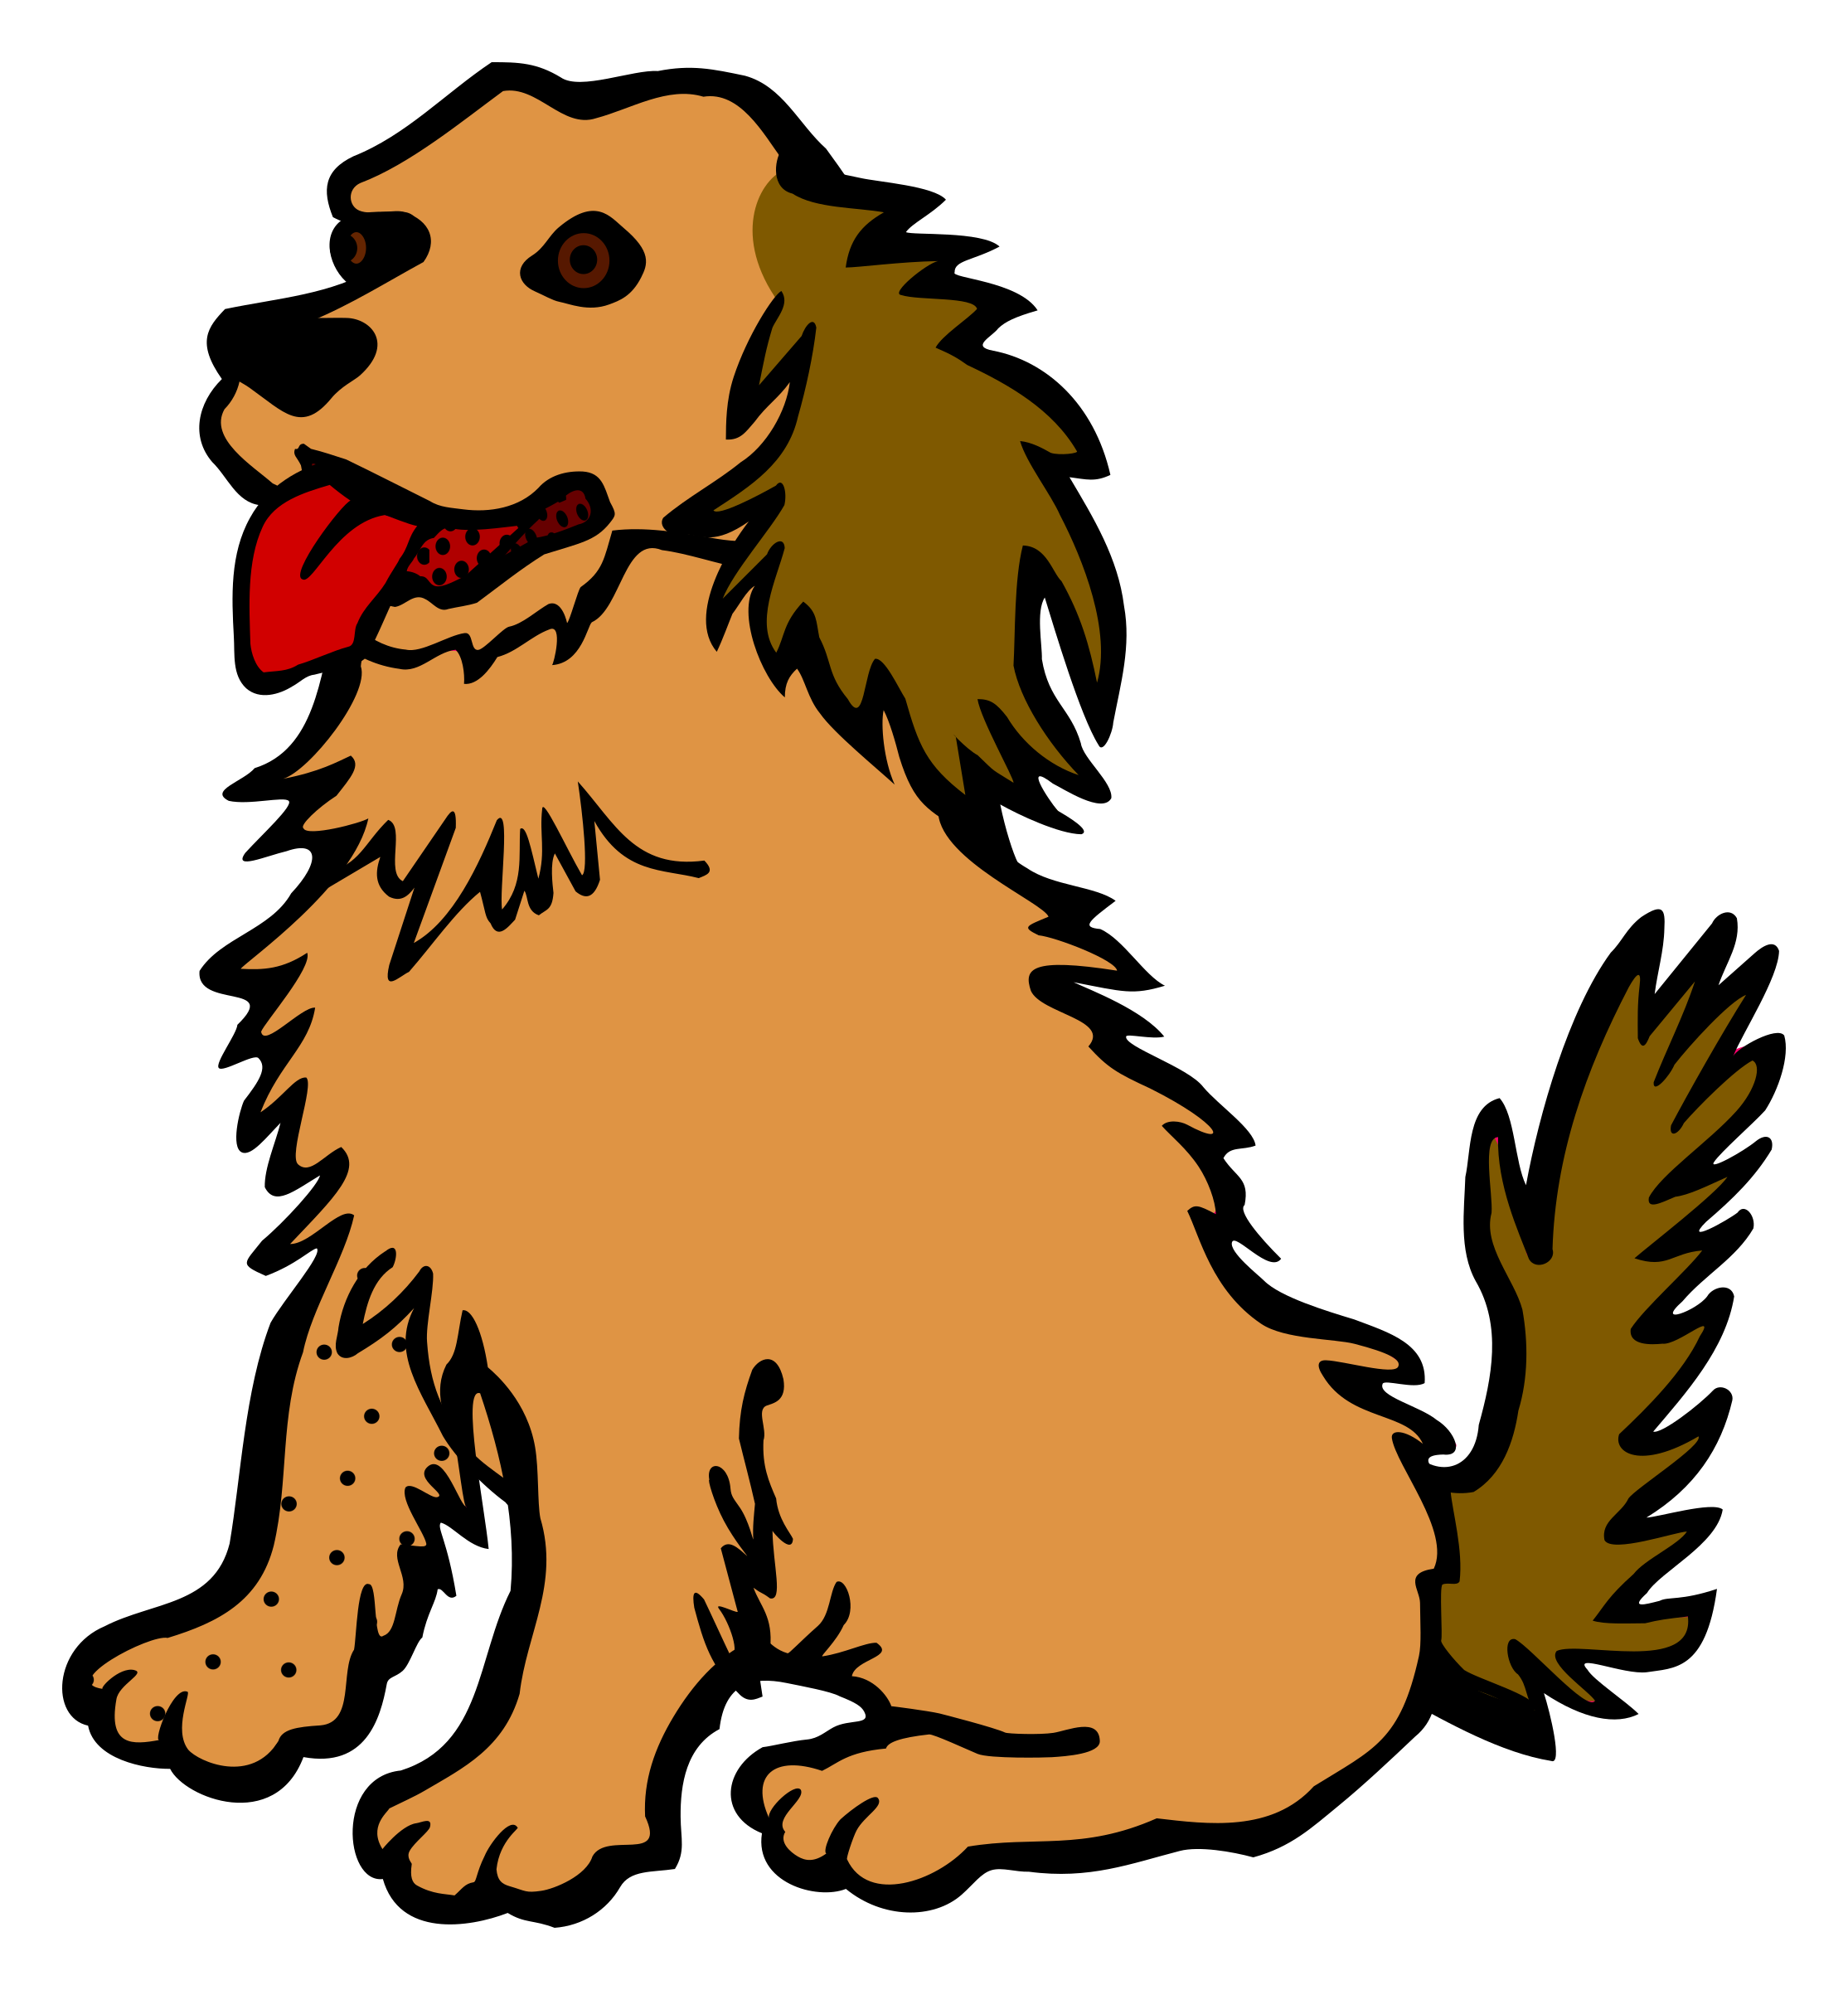 Dog with tongue out clipart. Coloured big image png